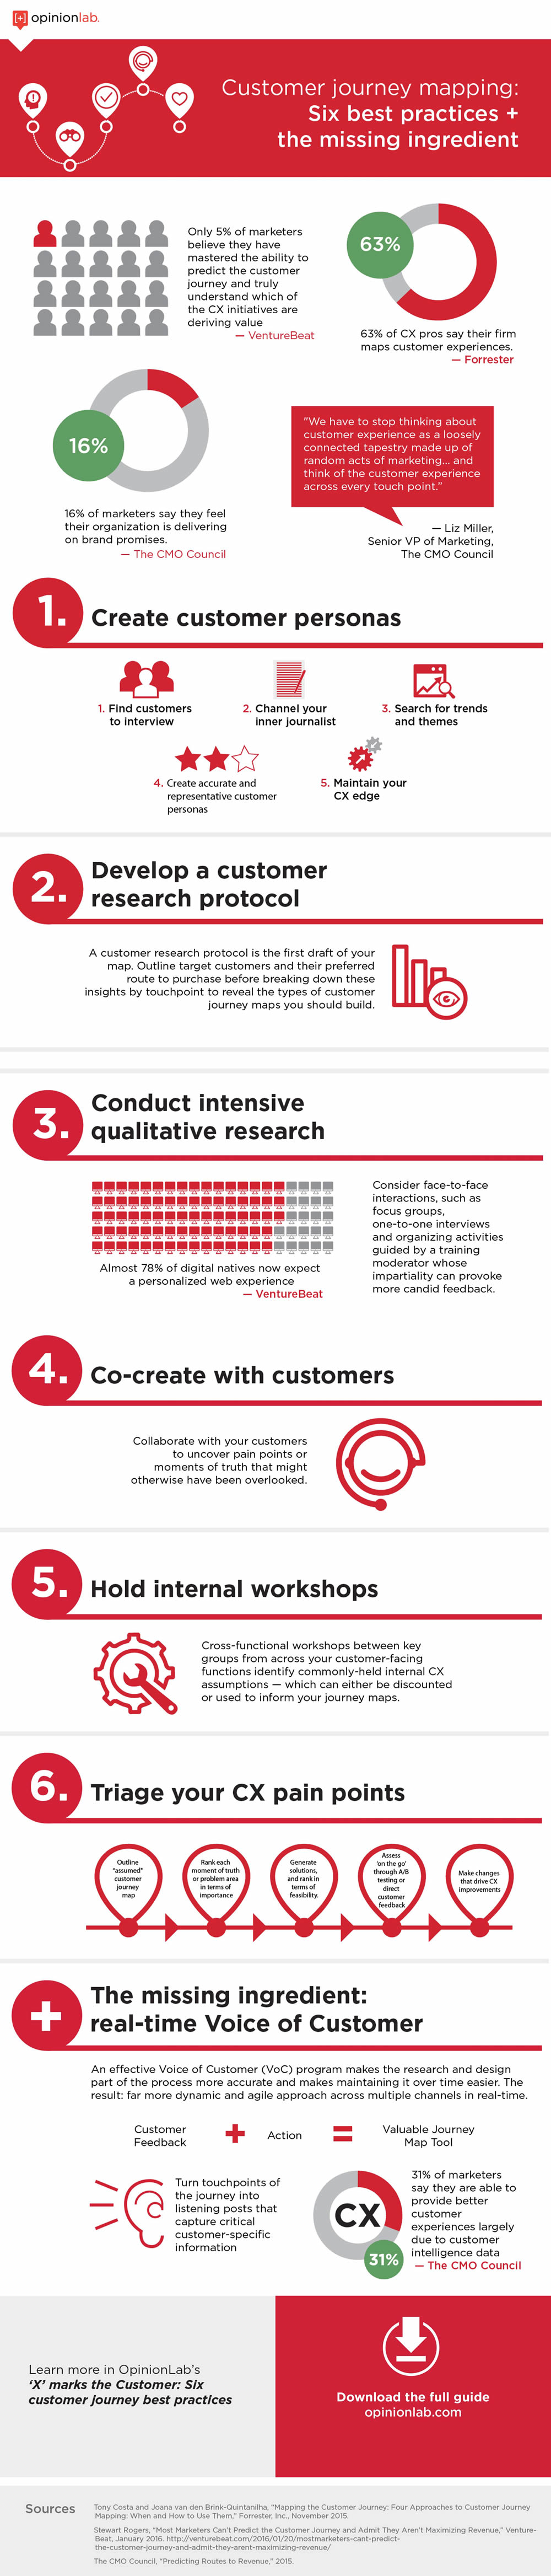 Infographic-Customer-Journey-Mapping-six-best-practices-1